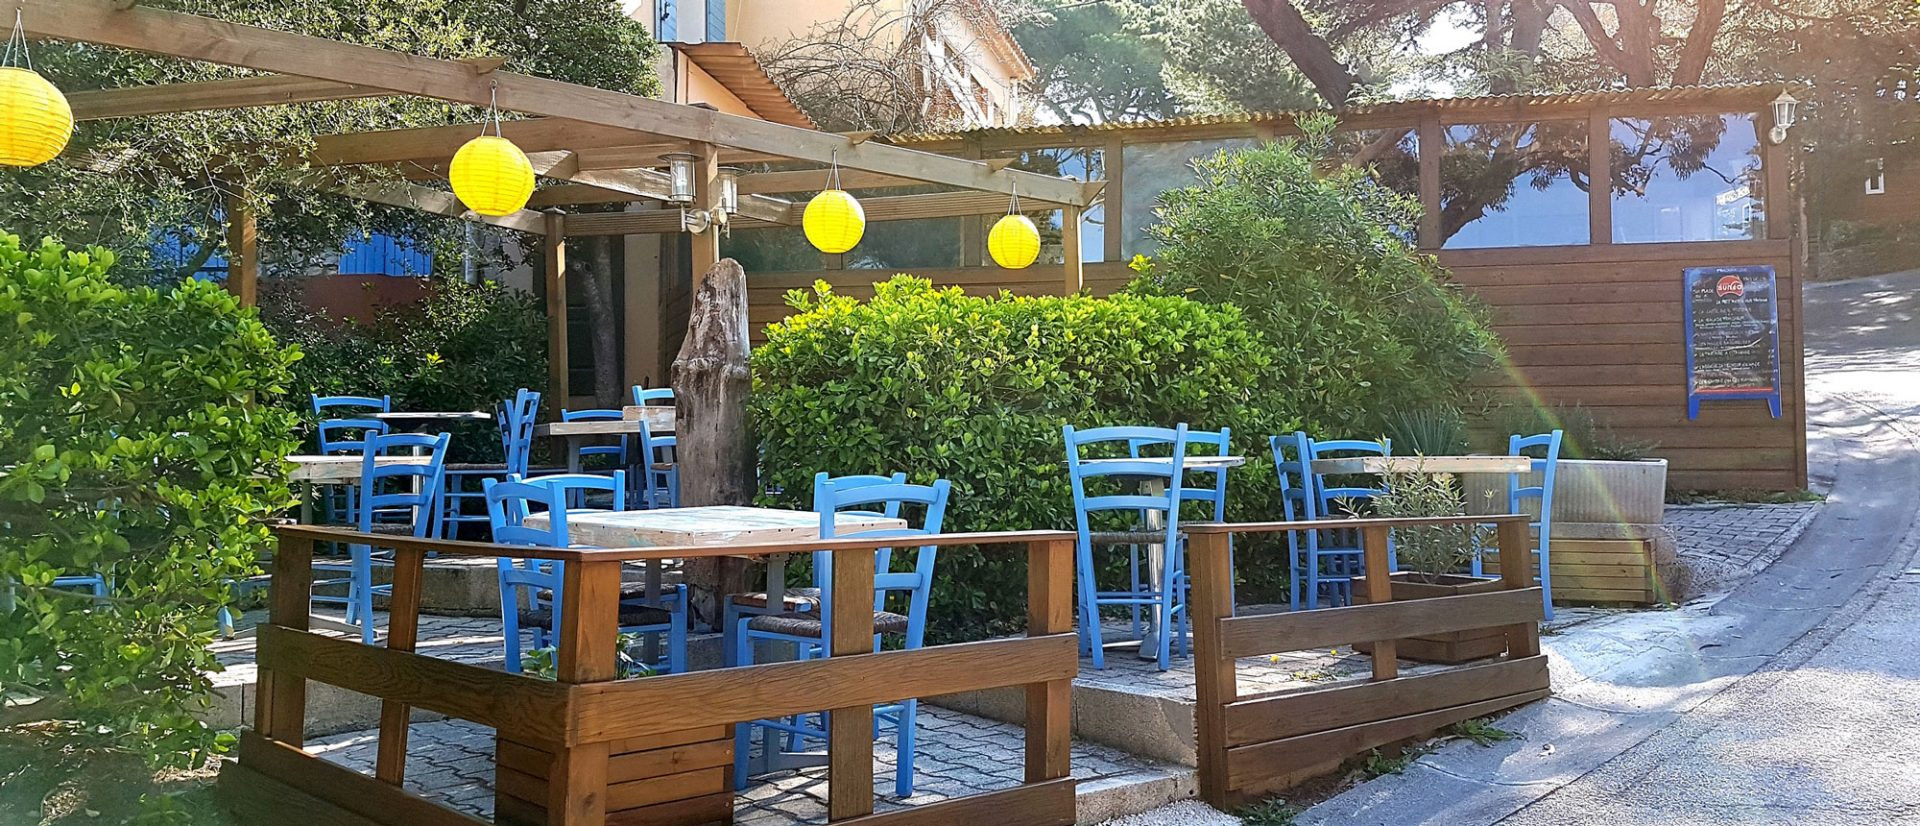 Clair De Lune : Restaurant Camping Vue Mer Clairdelune Giens Hyeres